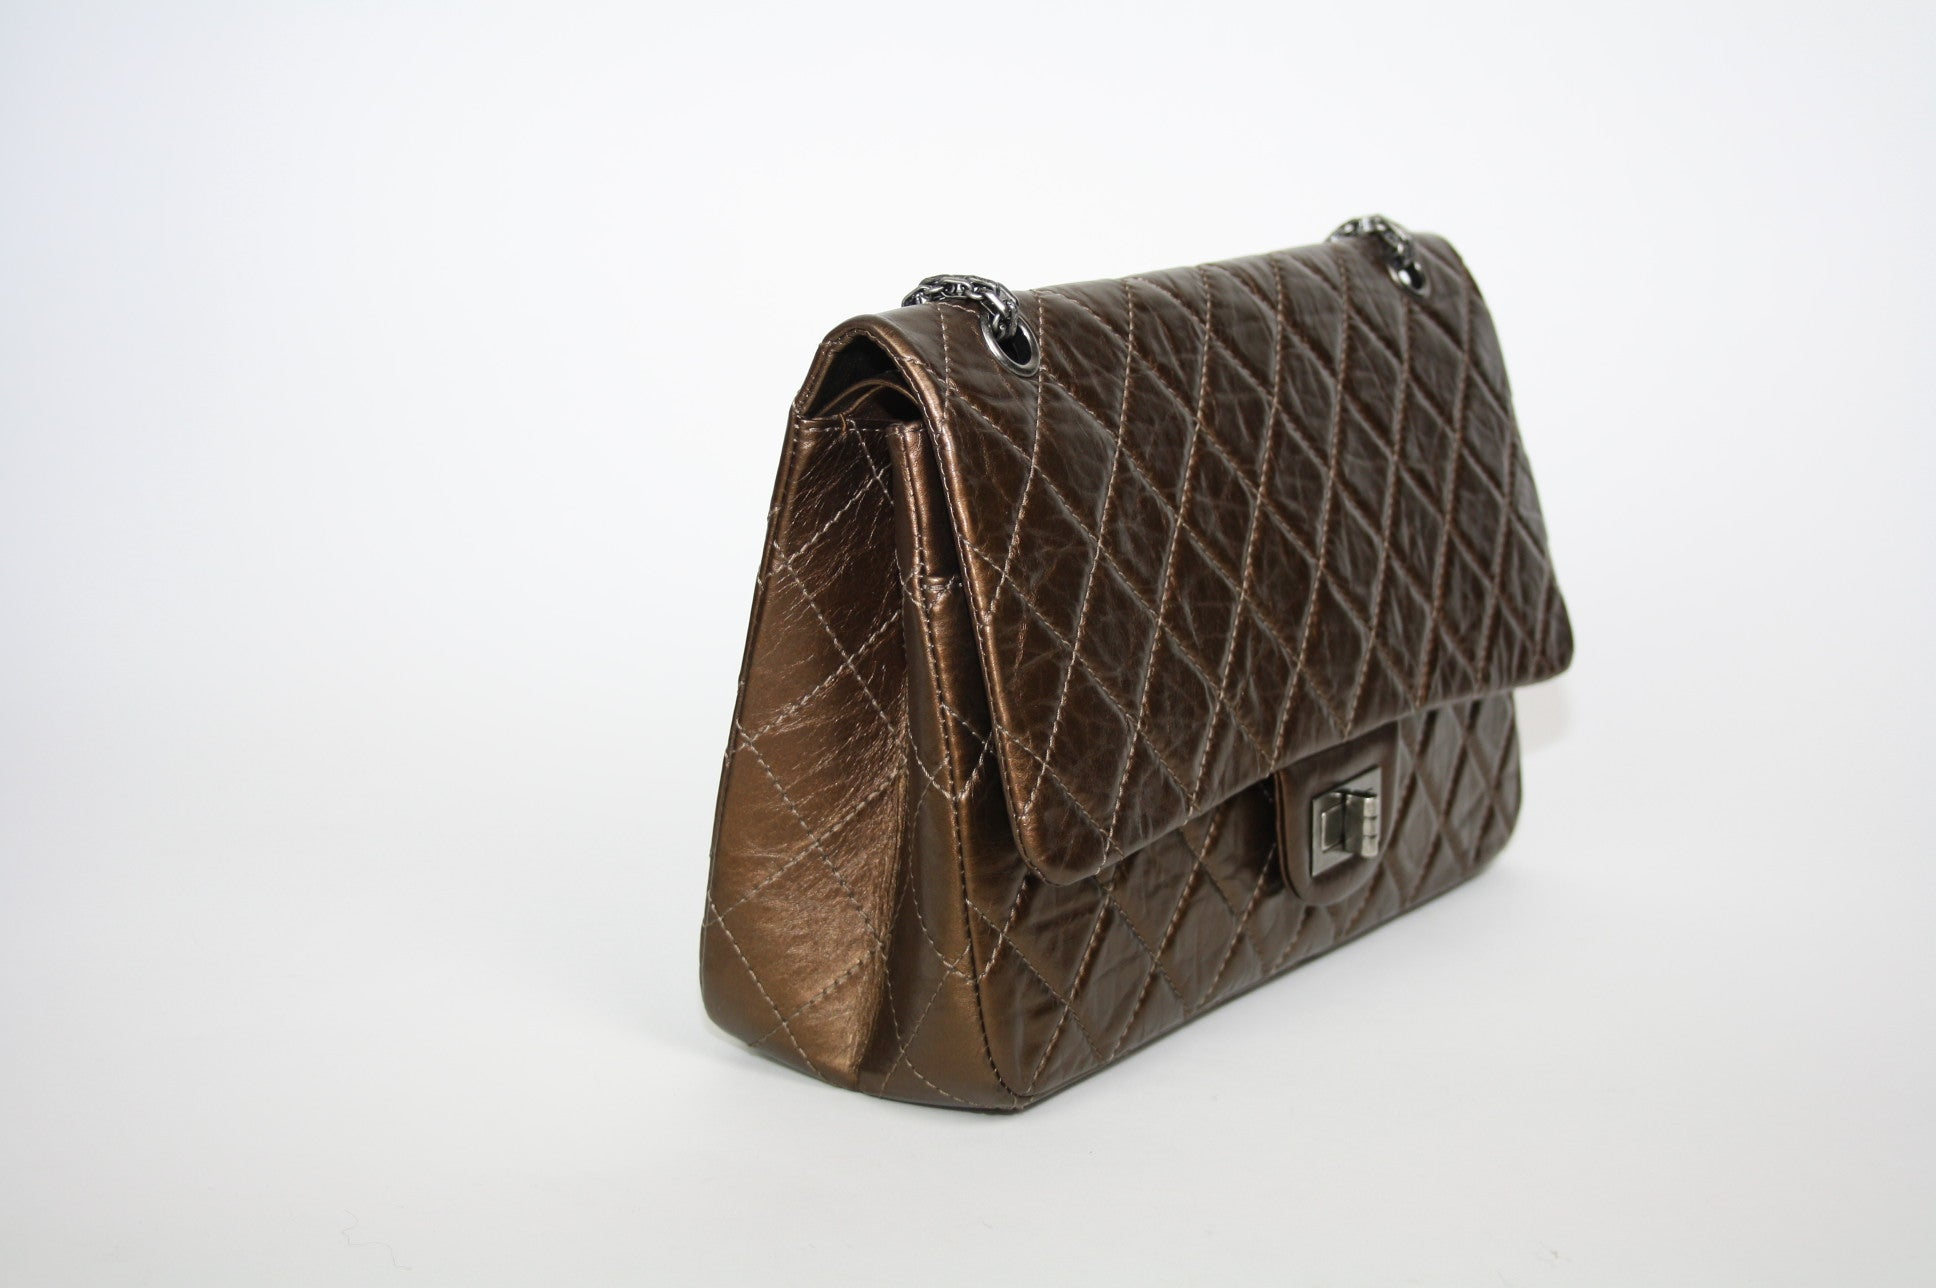 Chanel Bronze 2.55 Reissue Flap bag - Iconics Preloved Luxury